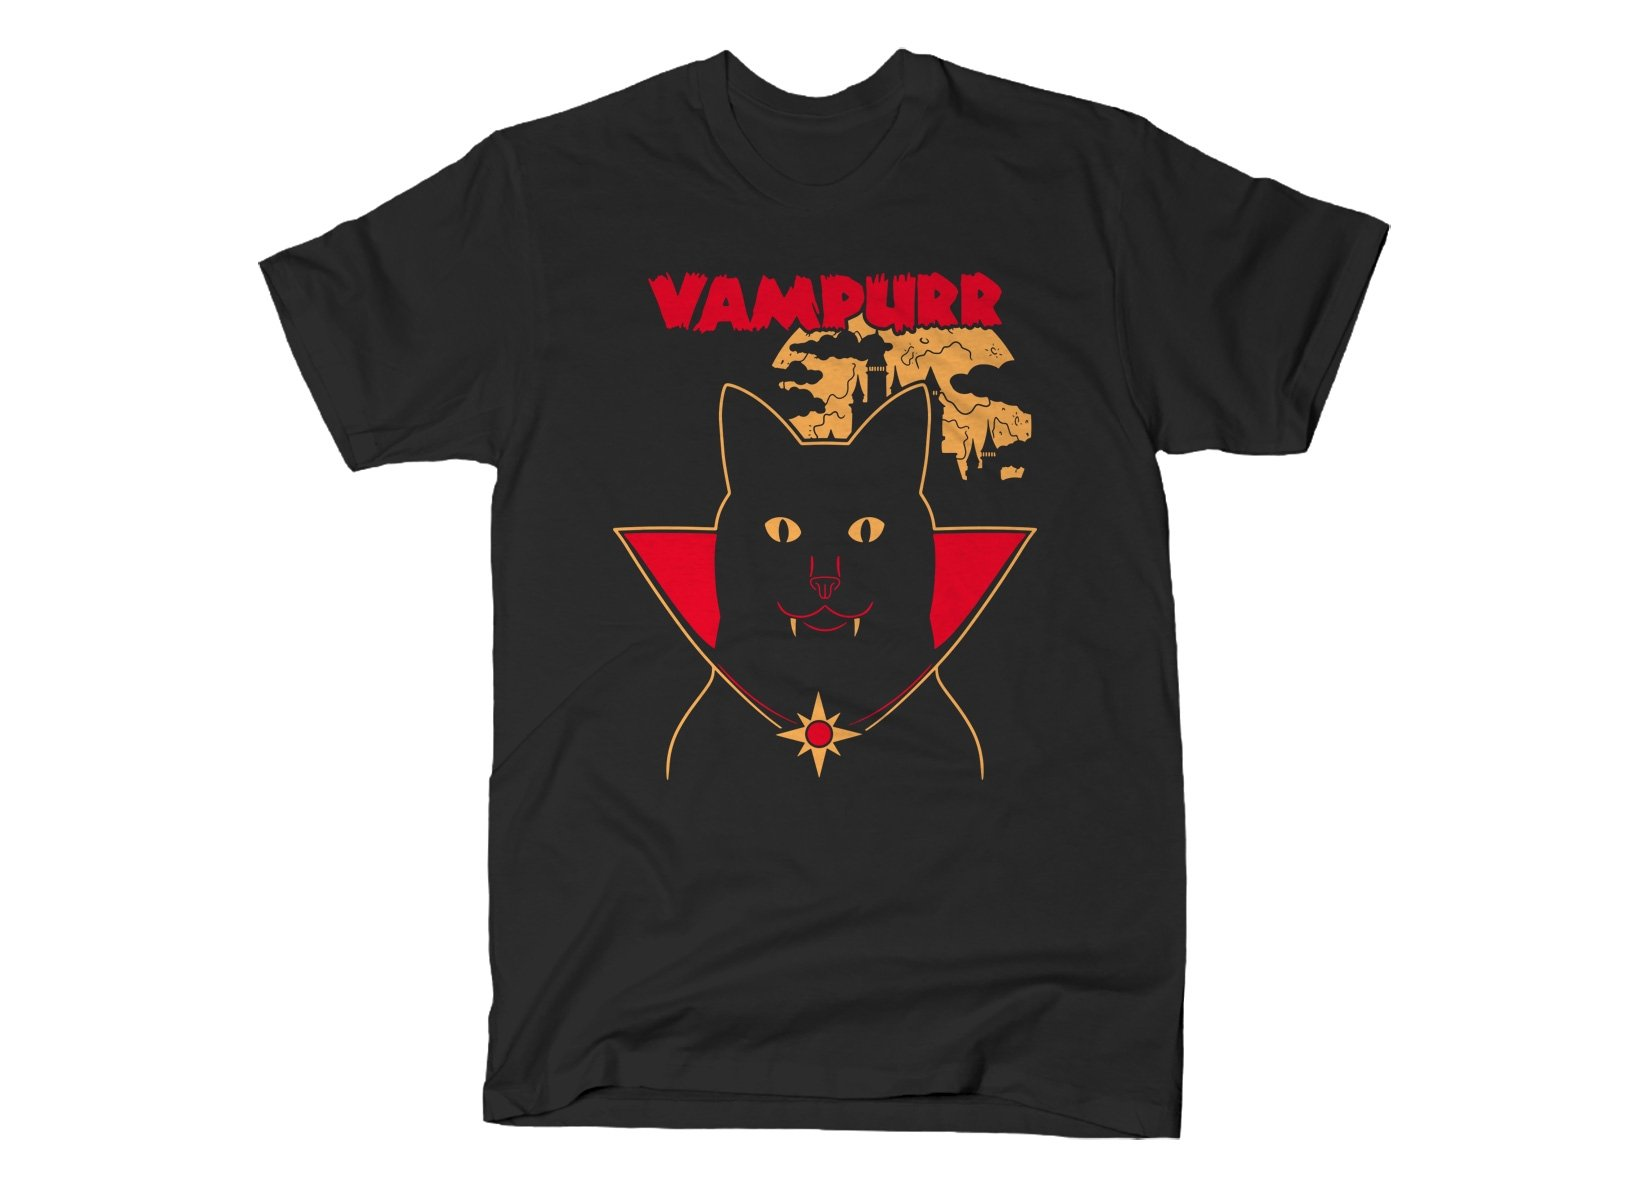 Vampurr on Mens T-Shirt